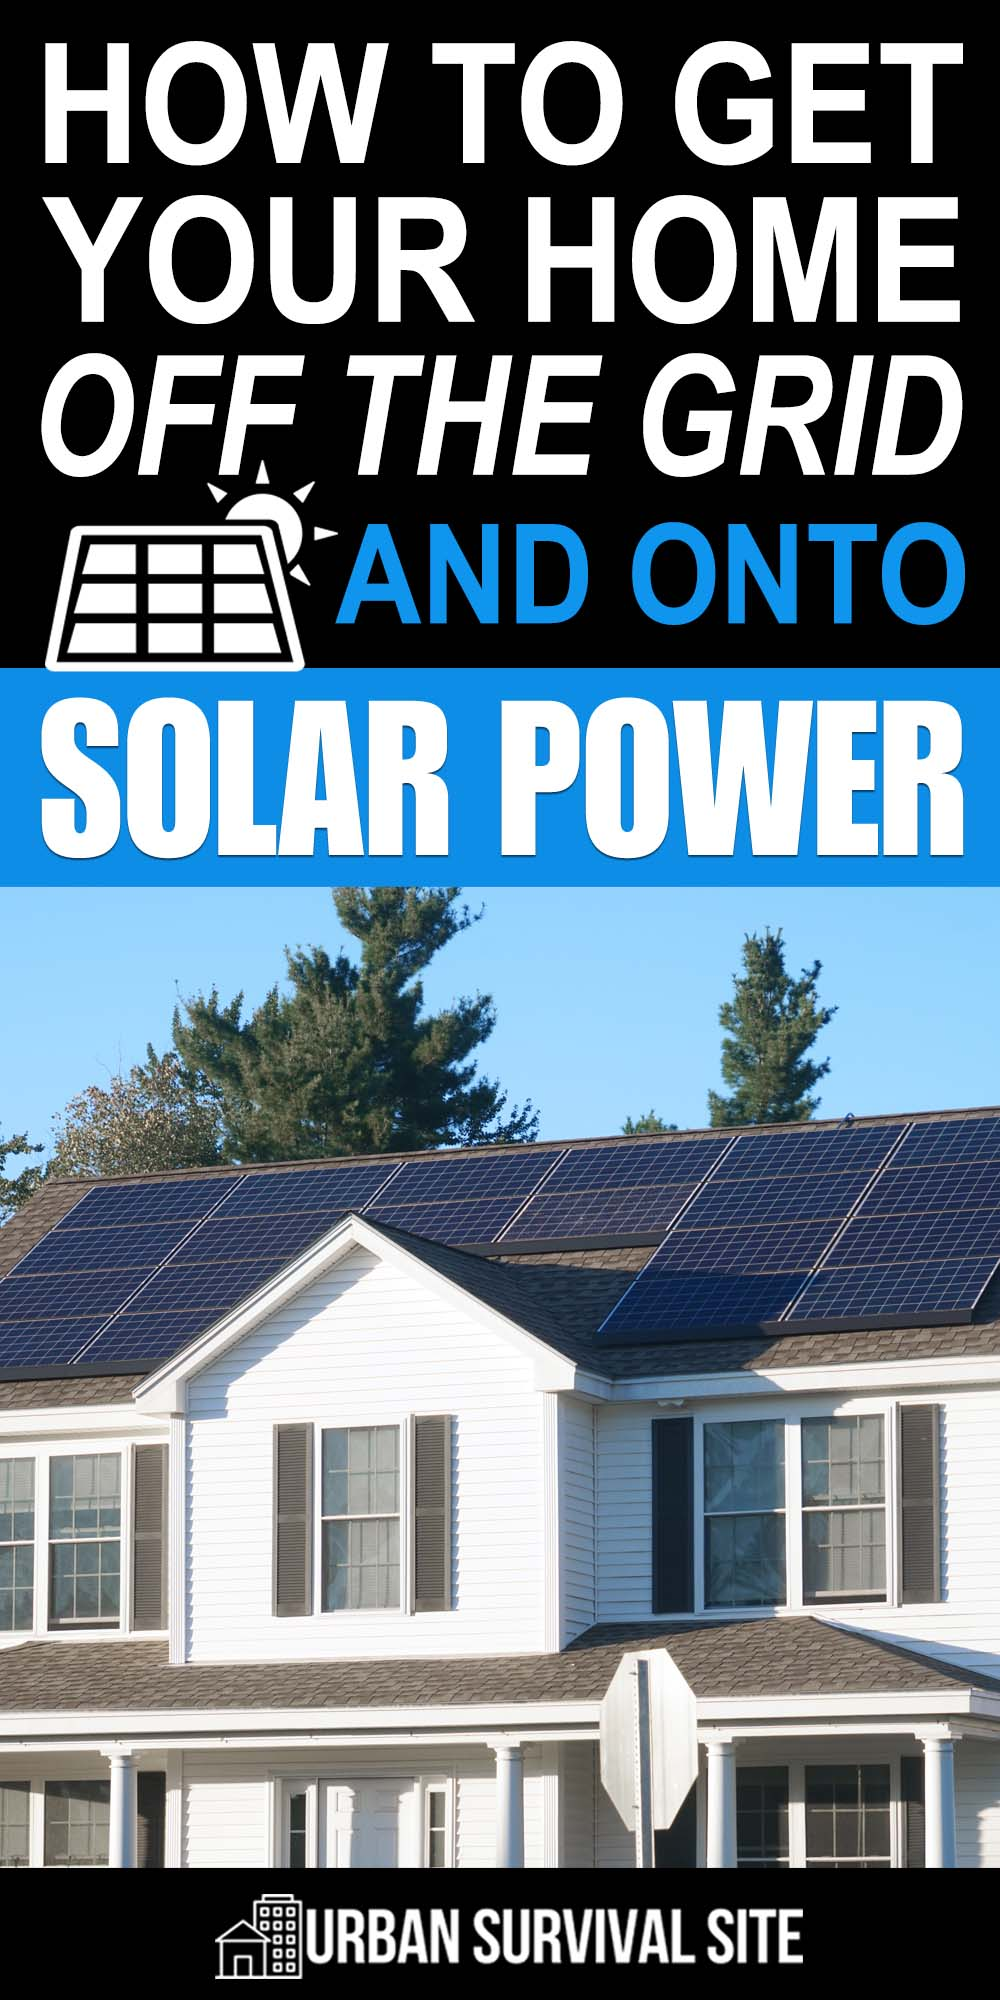 How To Get Your Home Off The Grid And Onto Solar Power